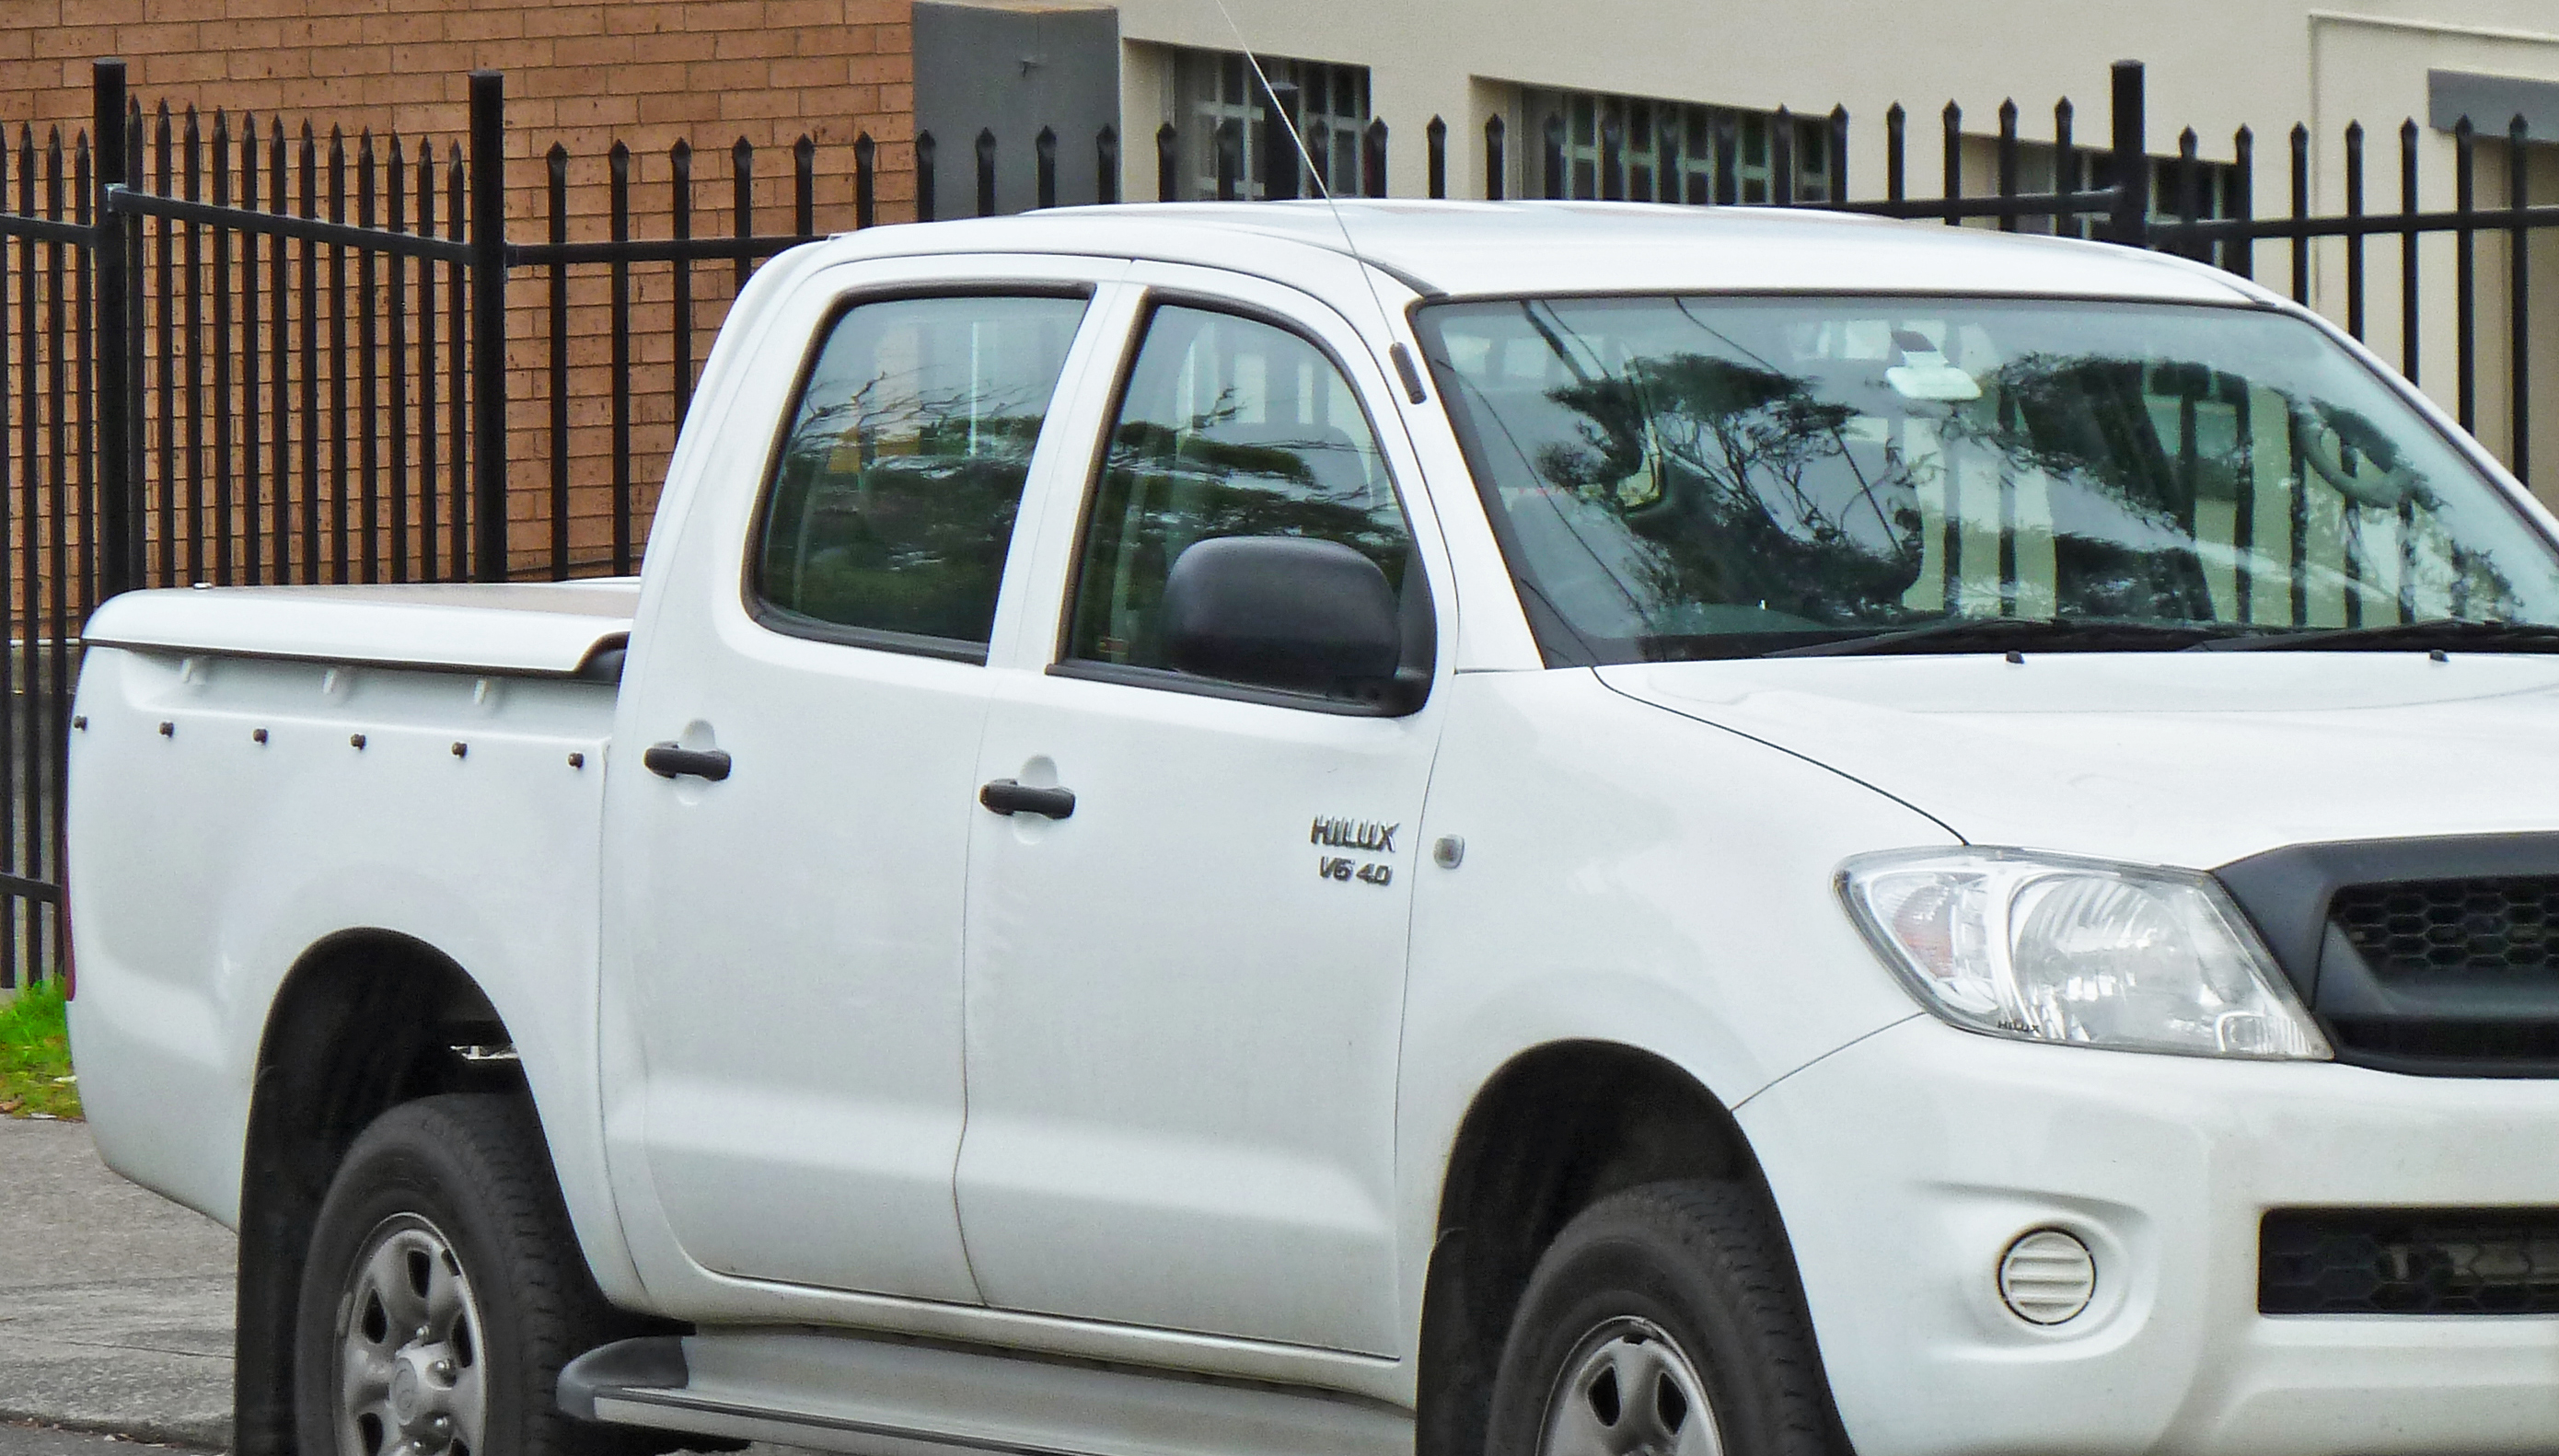 2010_toyota_hilux_ggn25r_sr_4-door_utility_2011-11-30_01